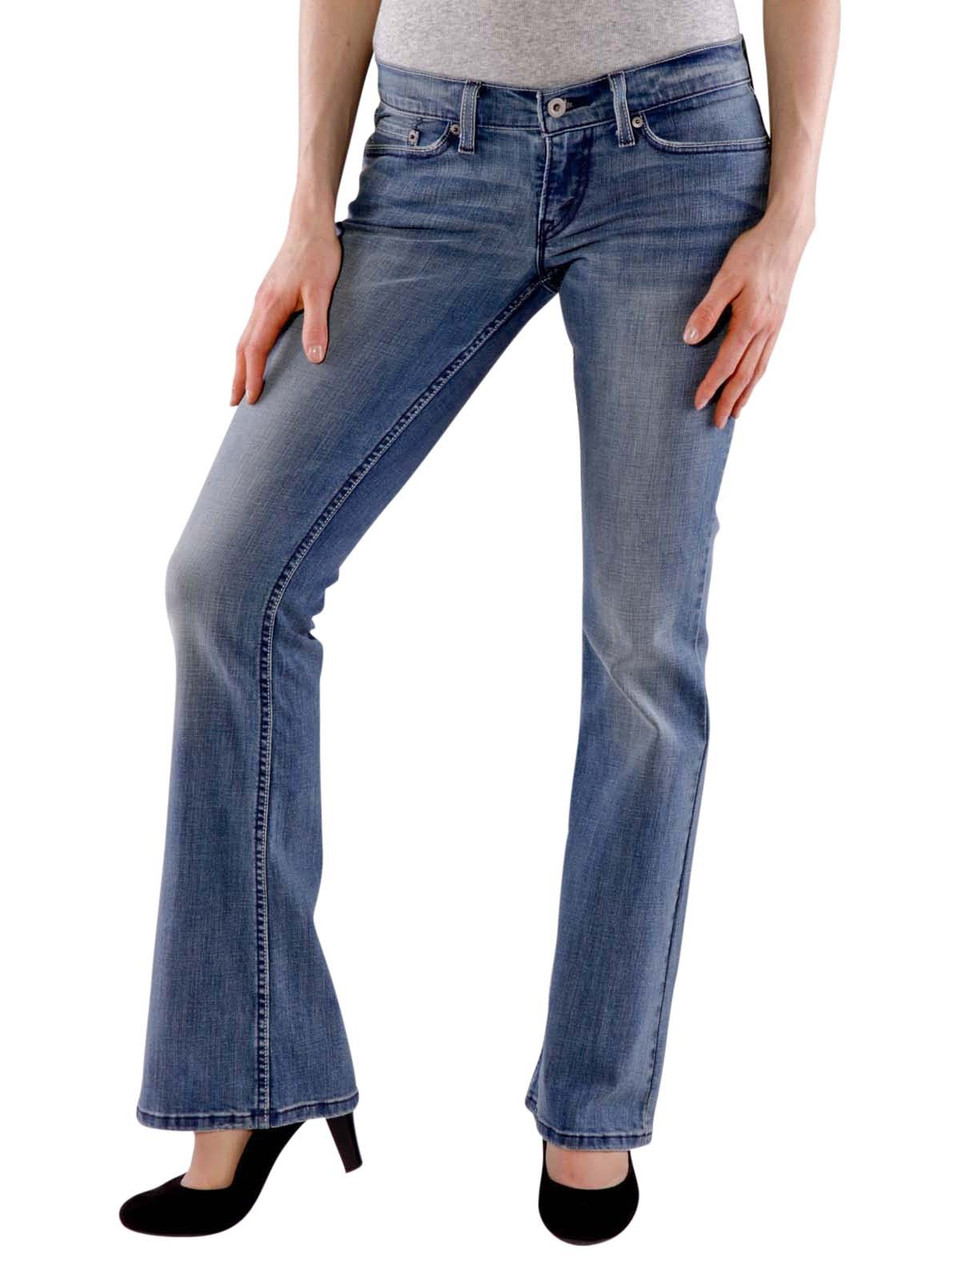 how to clean levi jeans